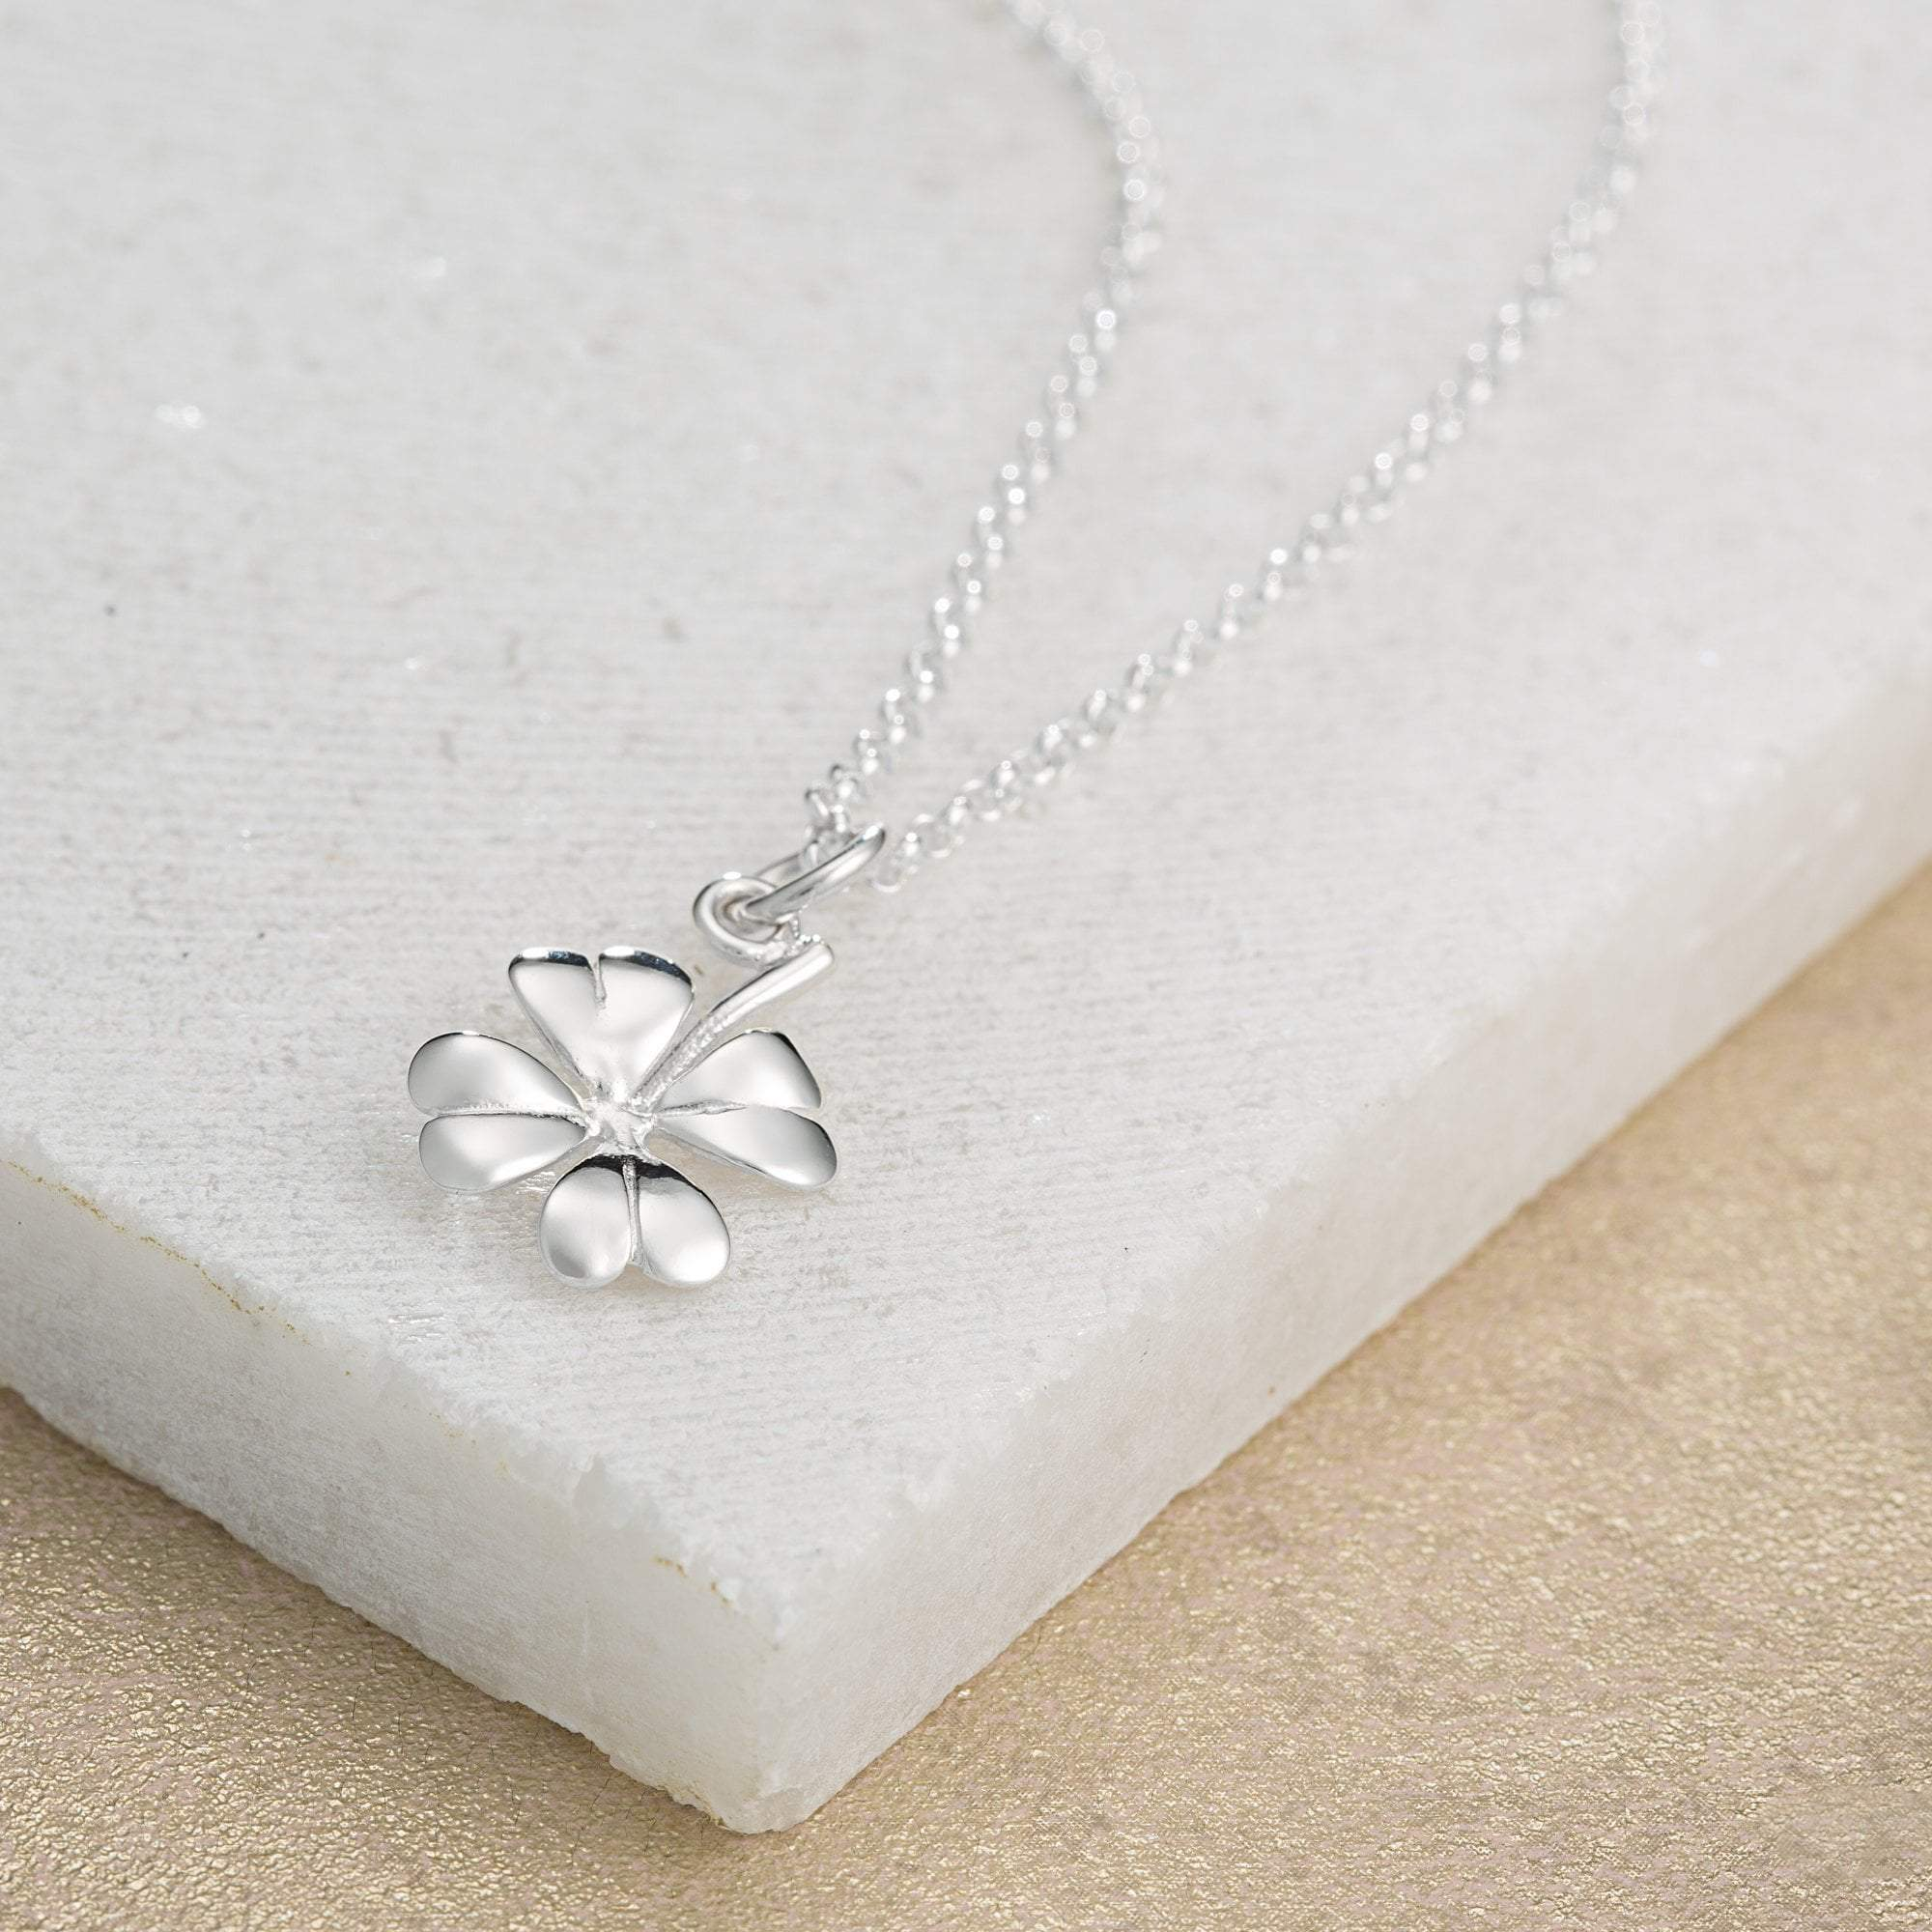 Silver Four Leaf Clover Necklace with 'Good Luck' Message